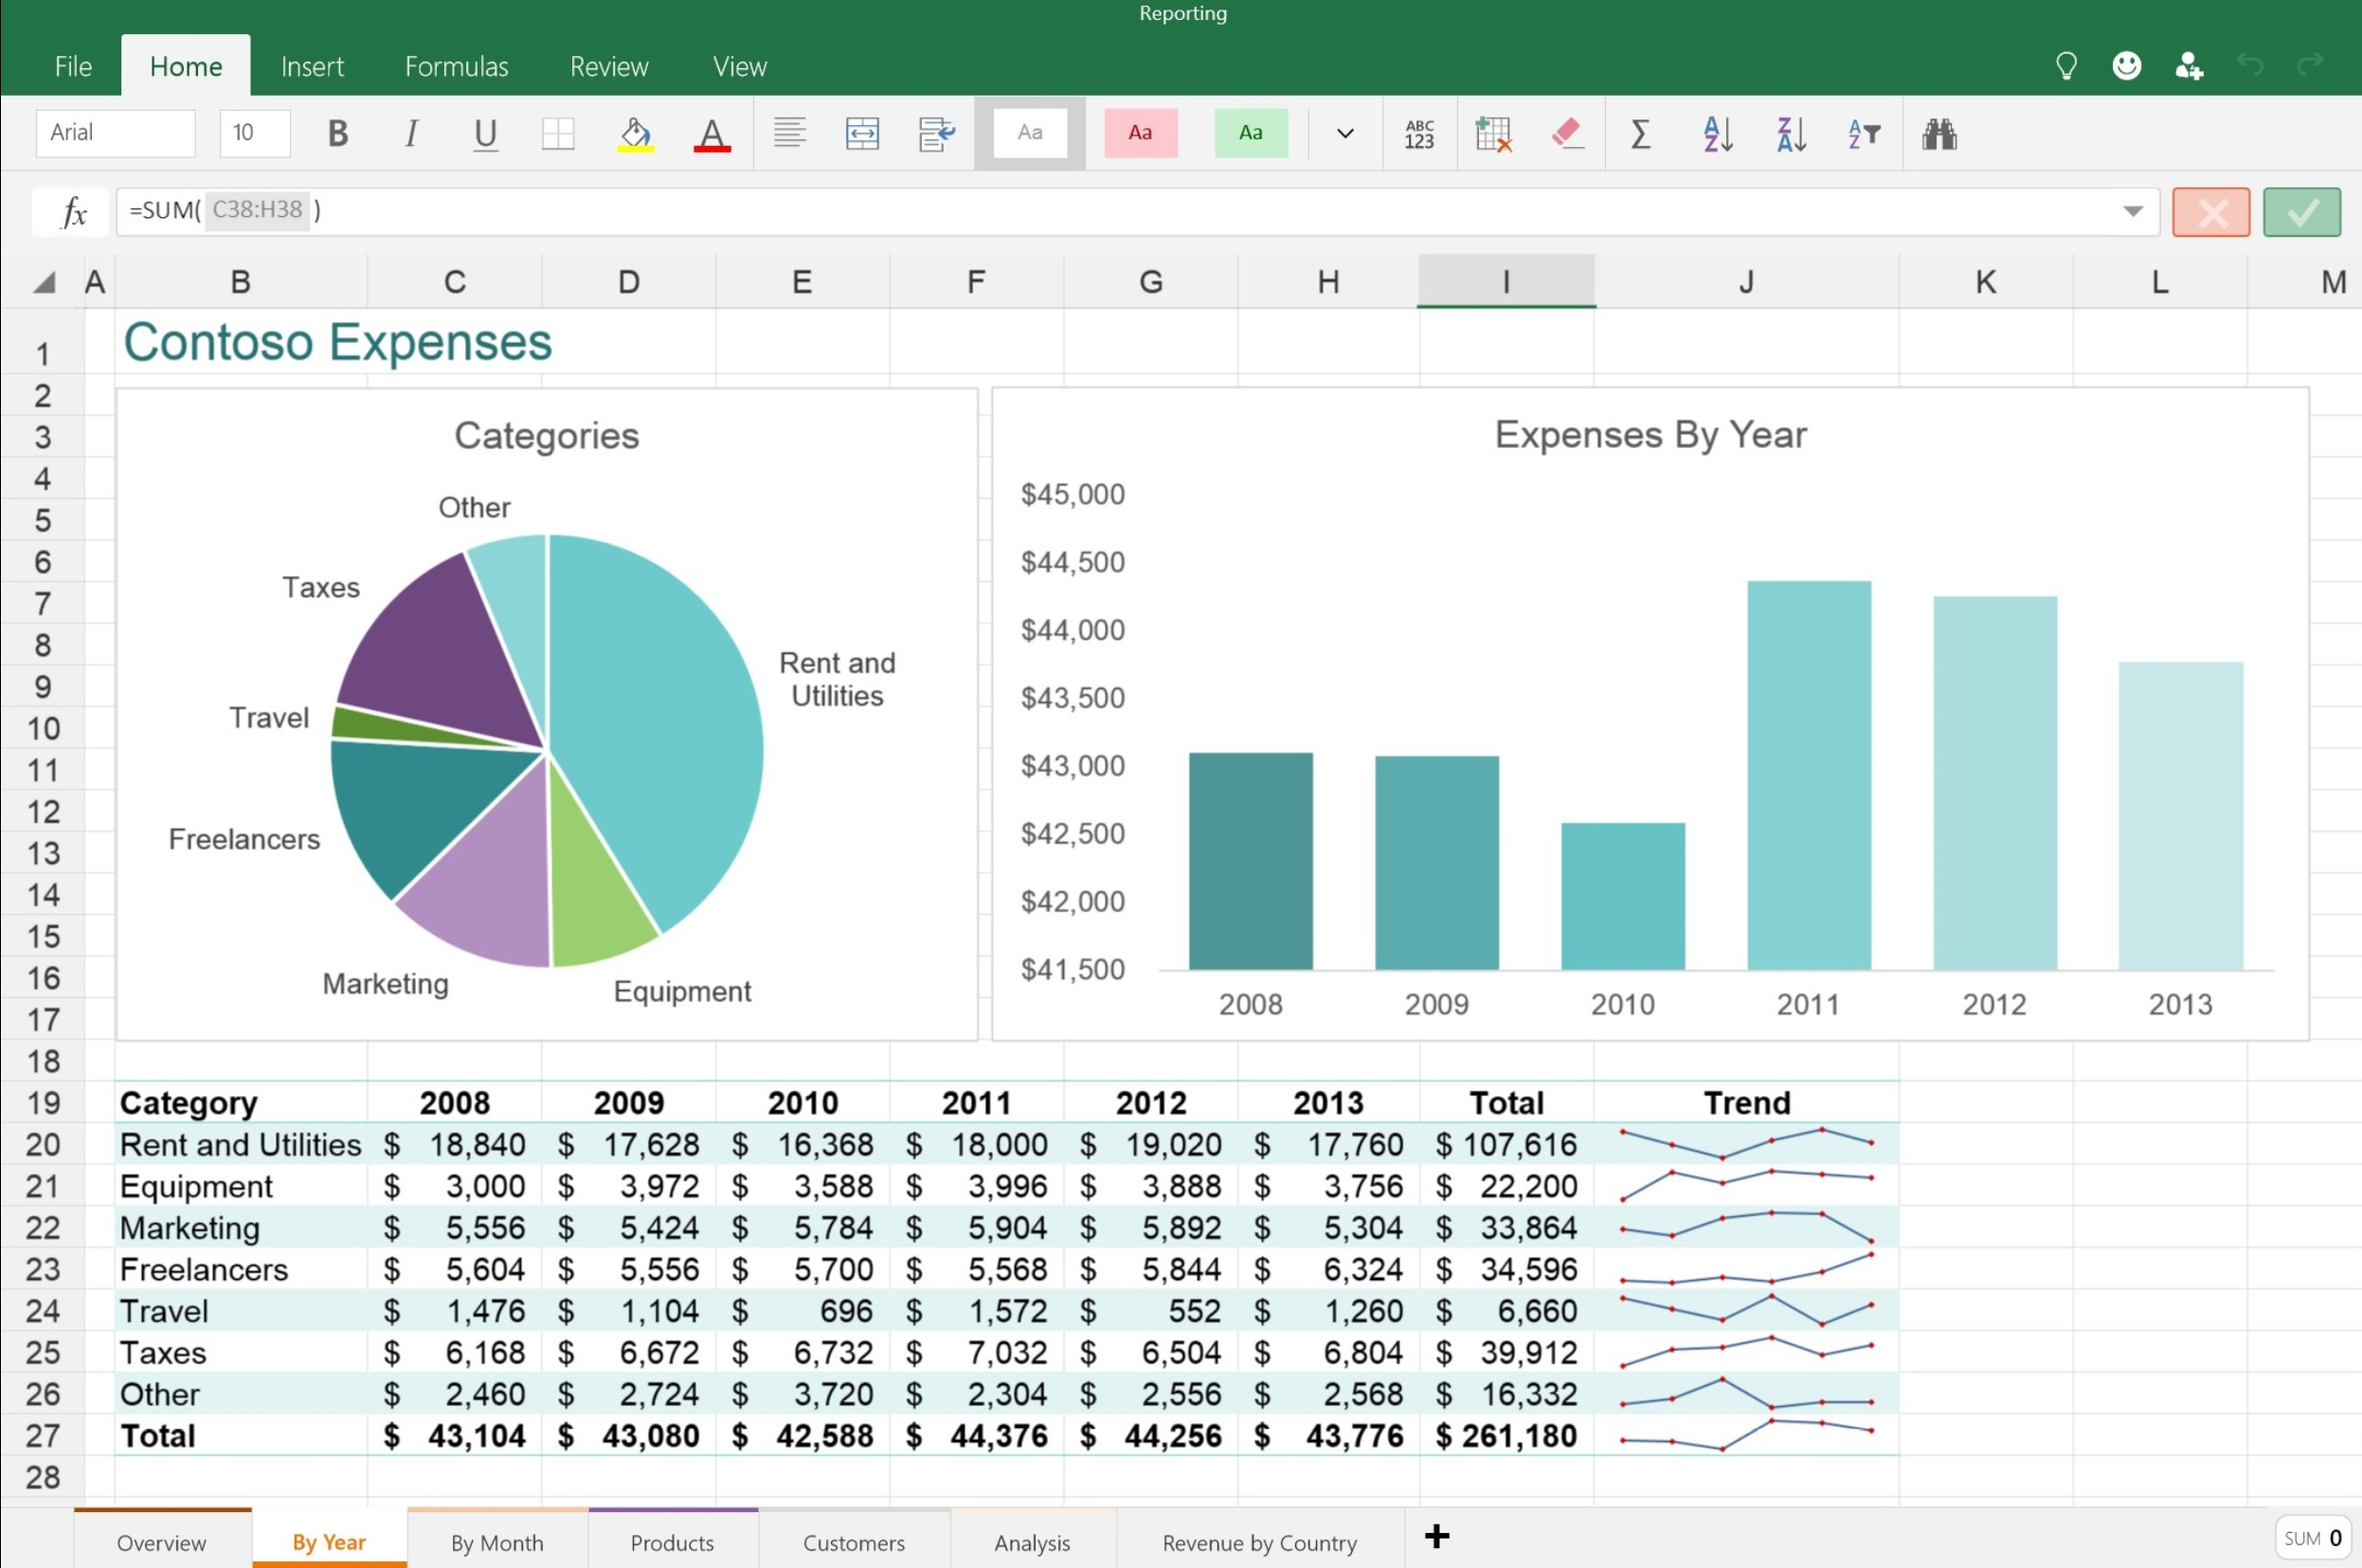 Ediblewildsus  Remarkable Features Available In The New Word Excel And Powerpoint Apps For  With Handsome Excel Touch App  With Cool Microsoft Excel Checklist Template Also Excel Microsoft Free In Addition Excel Control Toolbox And Today Date Excel As Well As Create Gantt Chart Excel Additionally Accounts Payable Excel Template From Mspowerusercom With Ediblewildsus  Handsome Features Available In The New Word Excel And Powerpoint Apps For  With Cool Excel Touch App  And Remarkable Microsoft Excel Checklist Template Also Excel Microsoft Free In Addition Excel Control Toolbox From Mspowerusercom